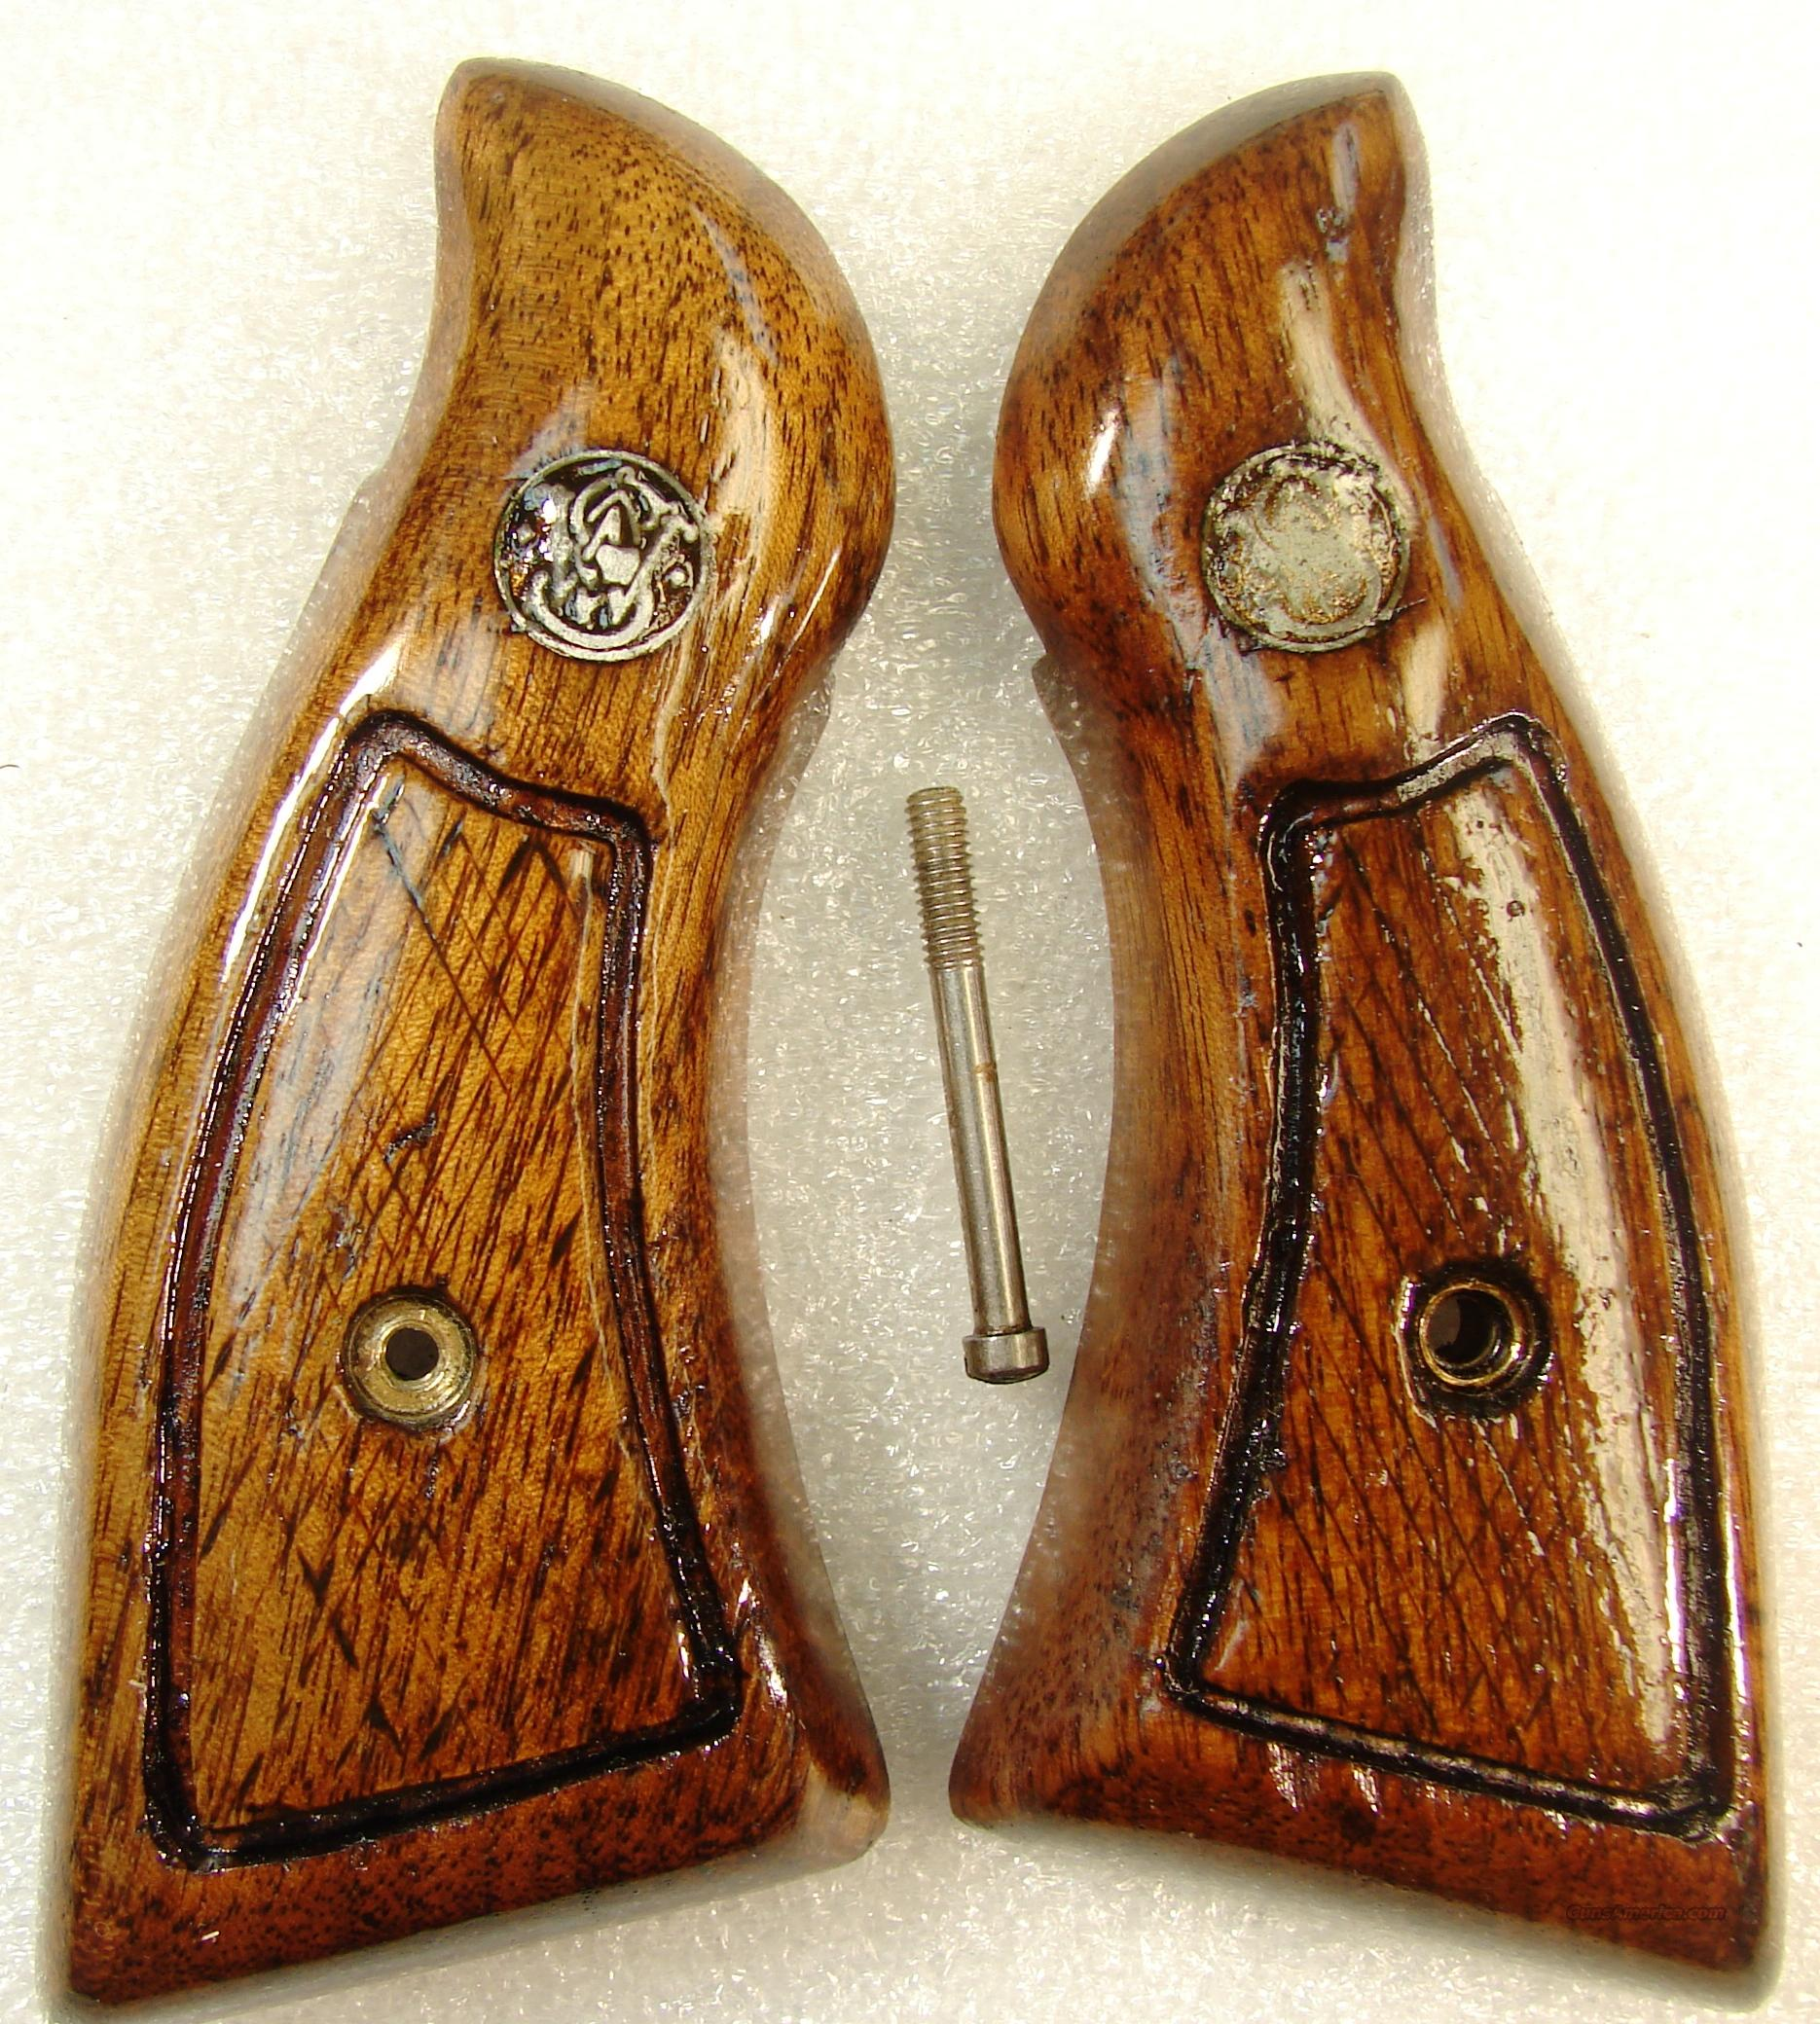 Grips S&W K L Square Butt Service Magna style 1970s Goncalo Alves Good Refinish Smith & Wesson  Non-Guns > Gunstocks, Grips & Wood